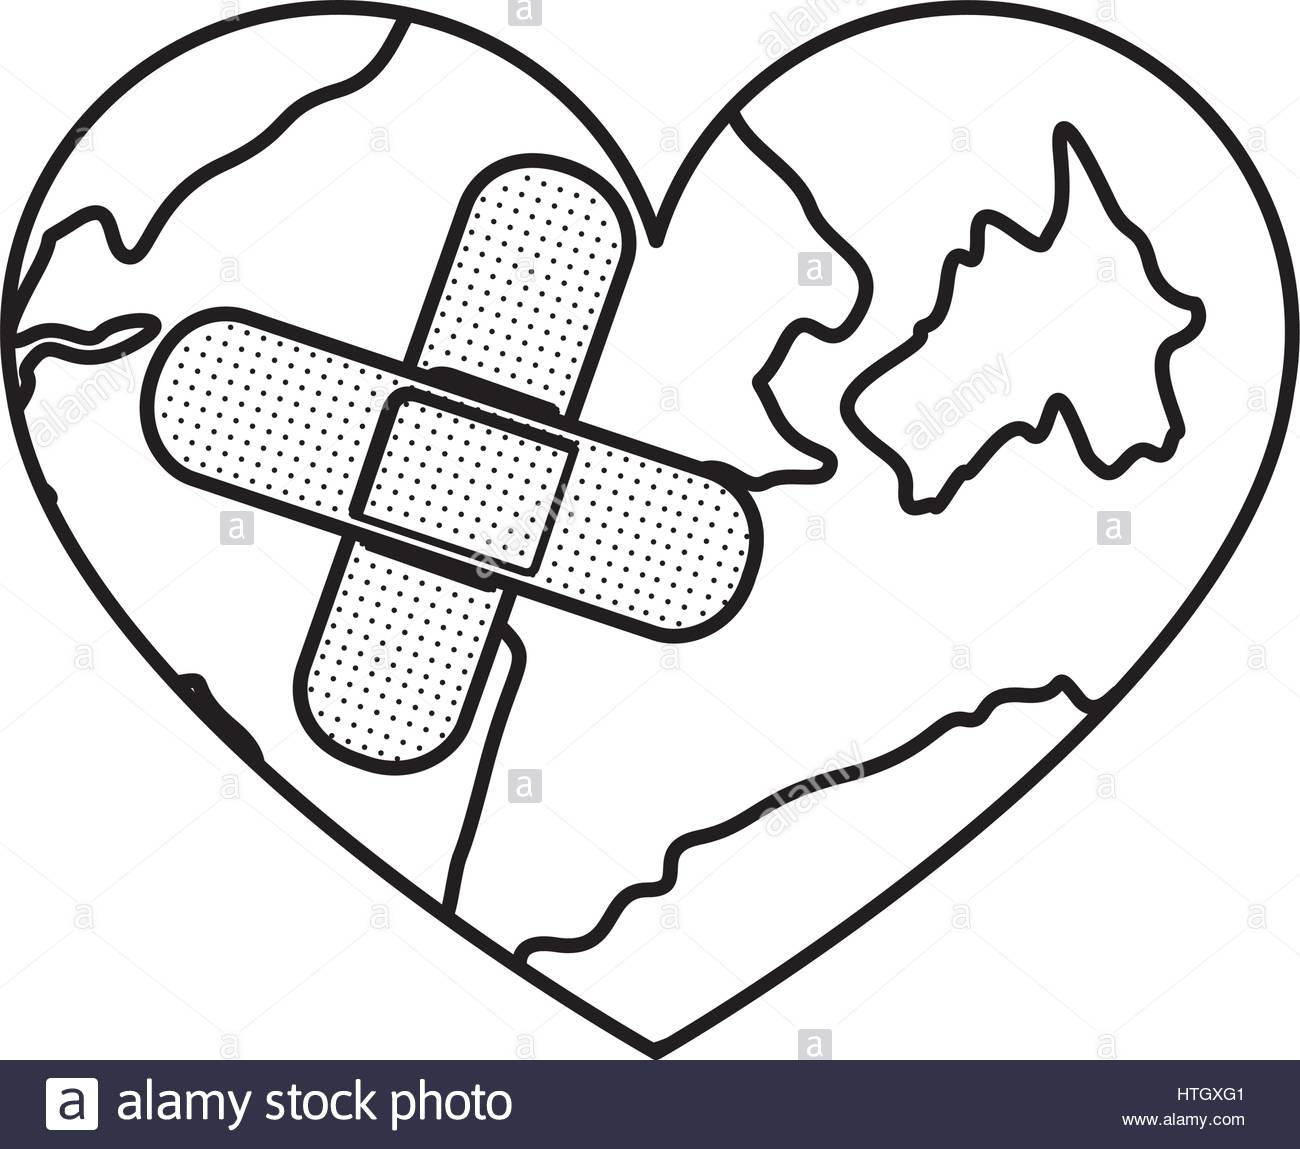 1300x1149 Figure Earth Planet Heart With Band Aid Icon Stock Vector Art